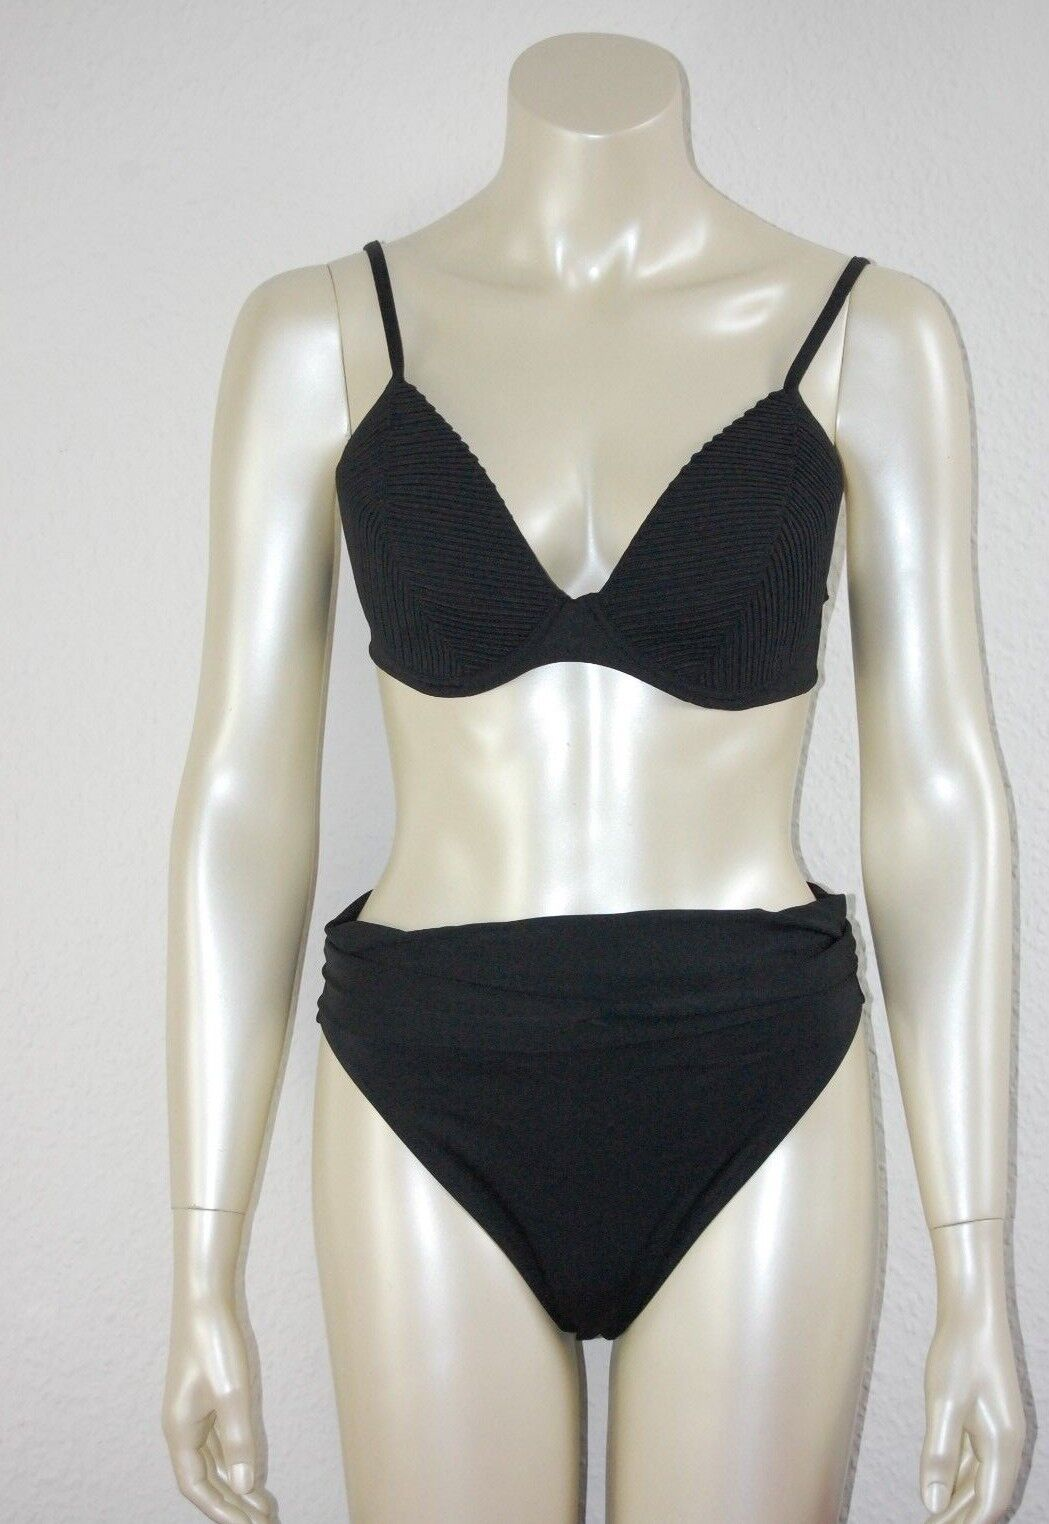 LA PERLA  DA DA DA DONNA CON STAFFA Bikini-Set Tg. 42 -- Made in   UVP  e2c8eb